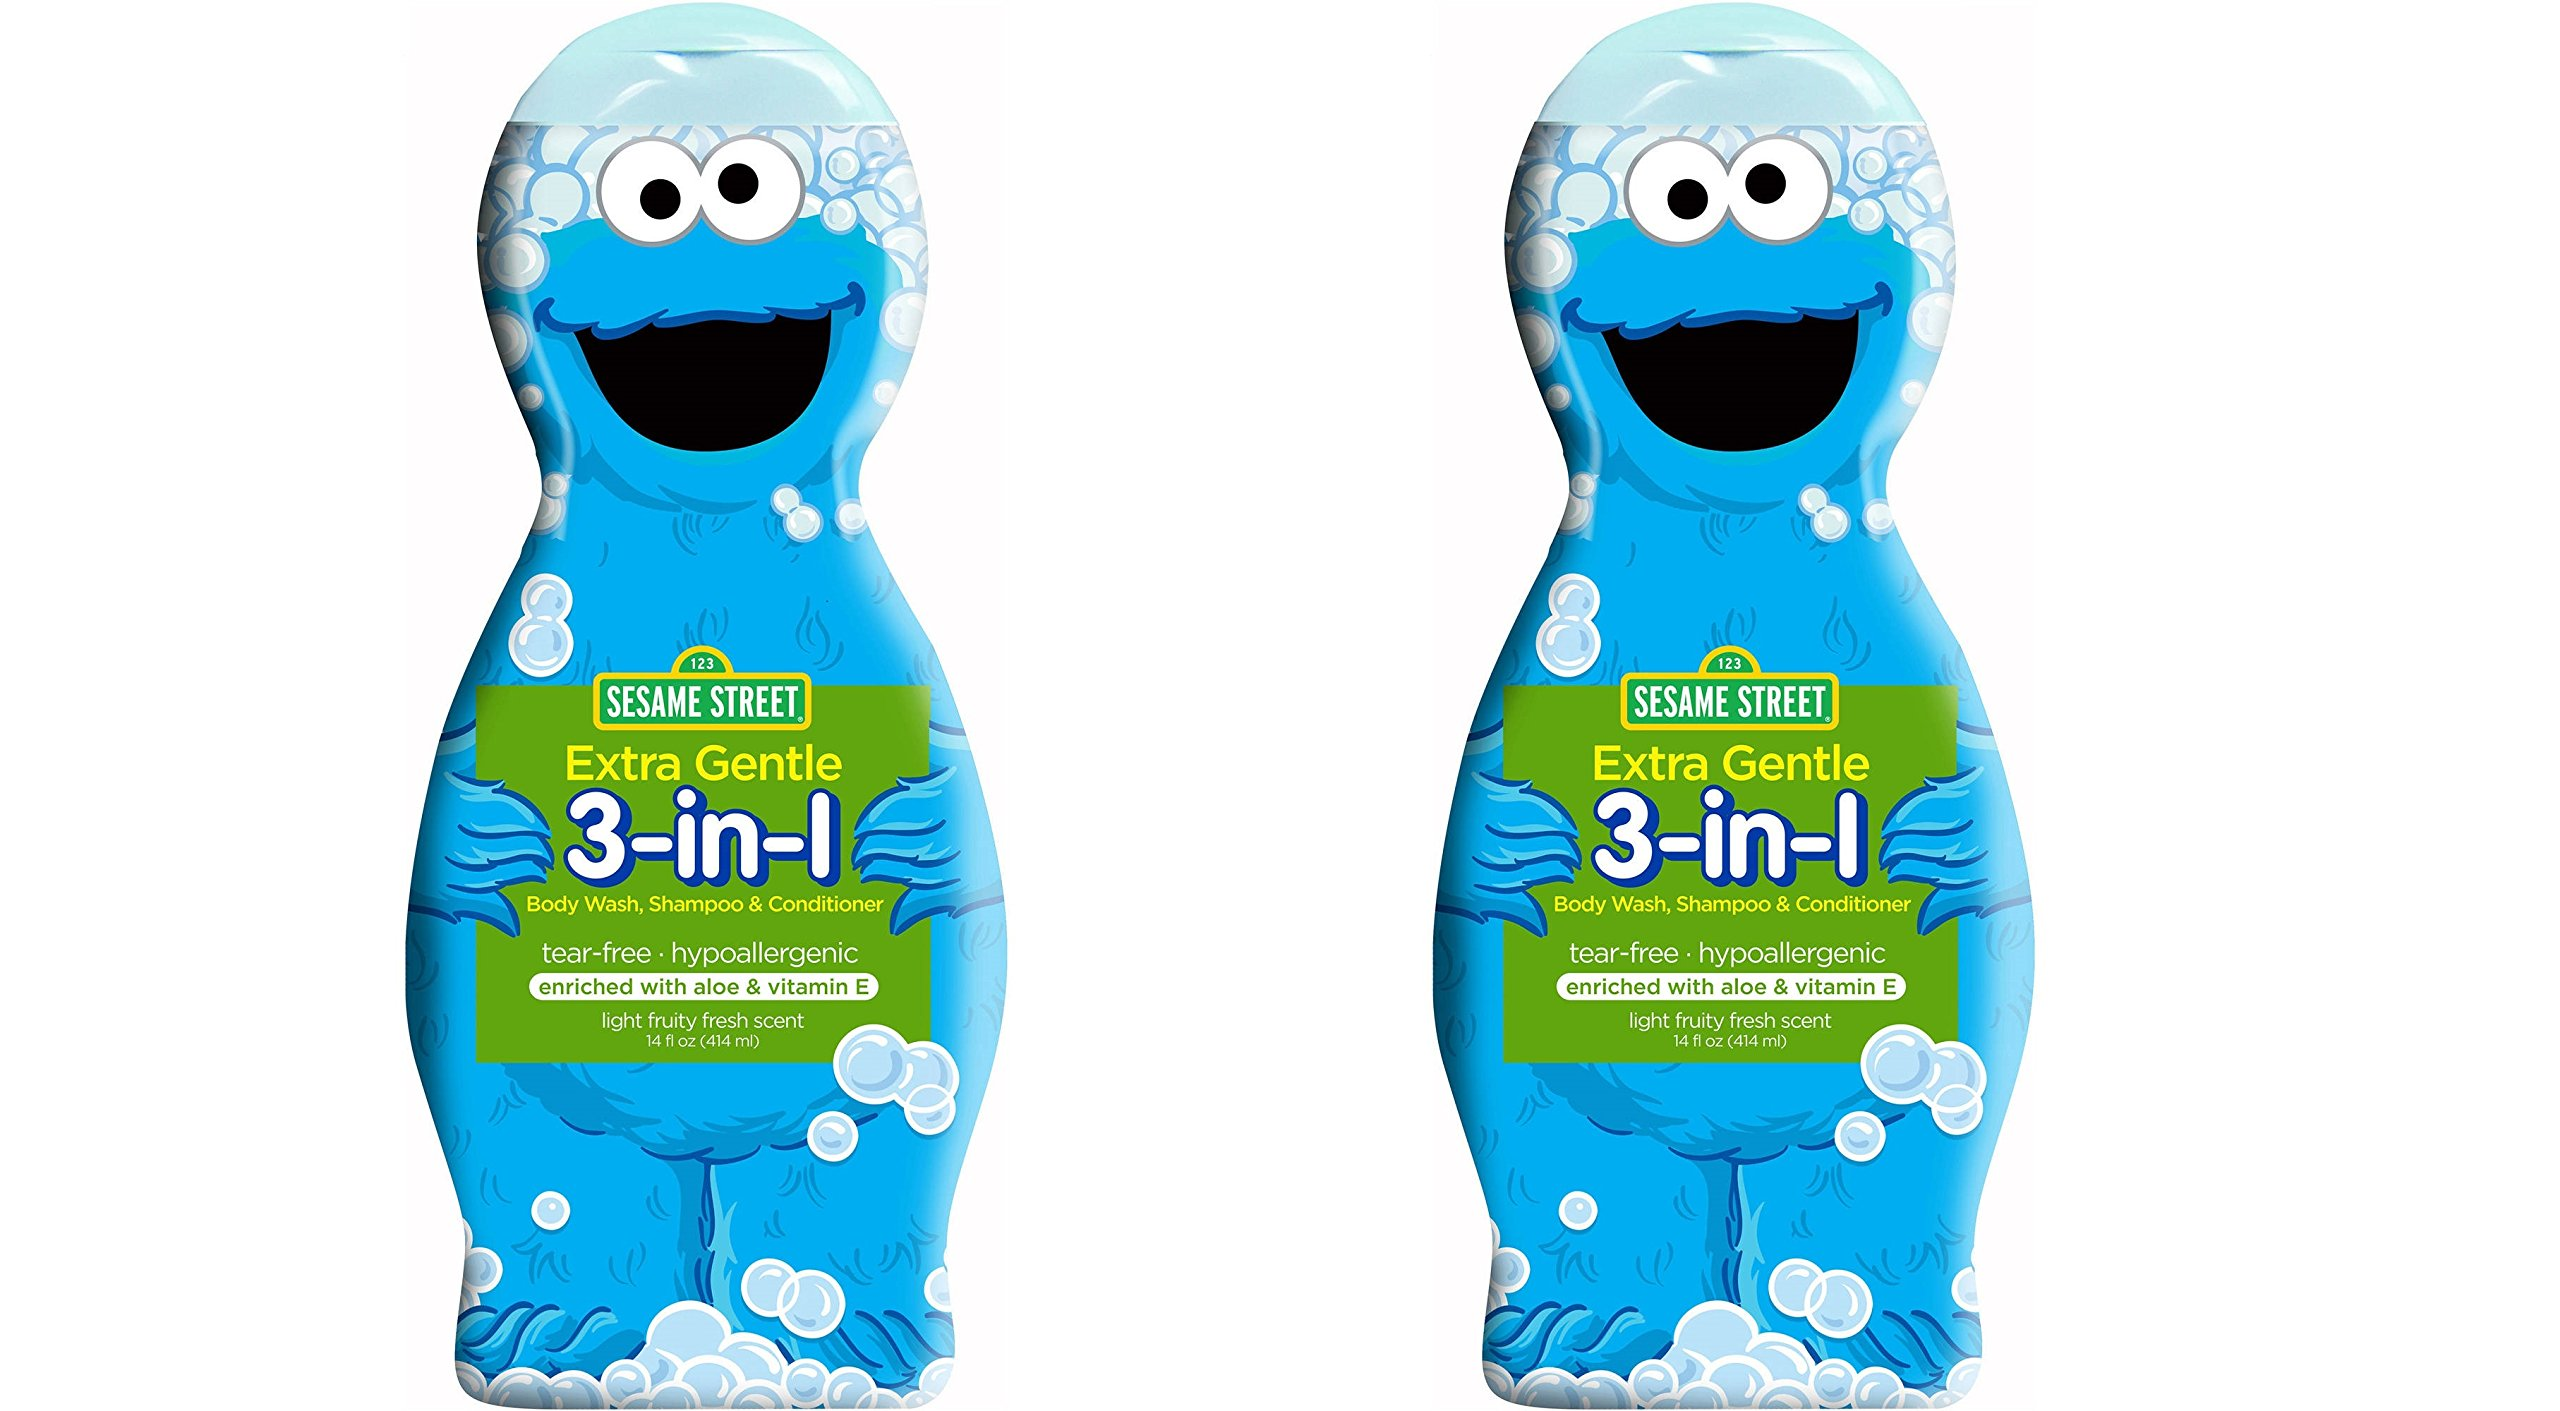 Sesame Street Cookie Monster Extra Sensitive 3-in-1 Body Wash, Shampoo and Conditioner (Pack of 2) by Sesame Street